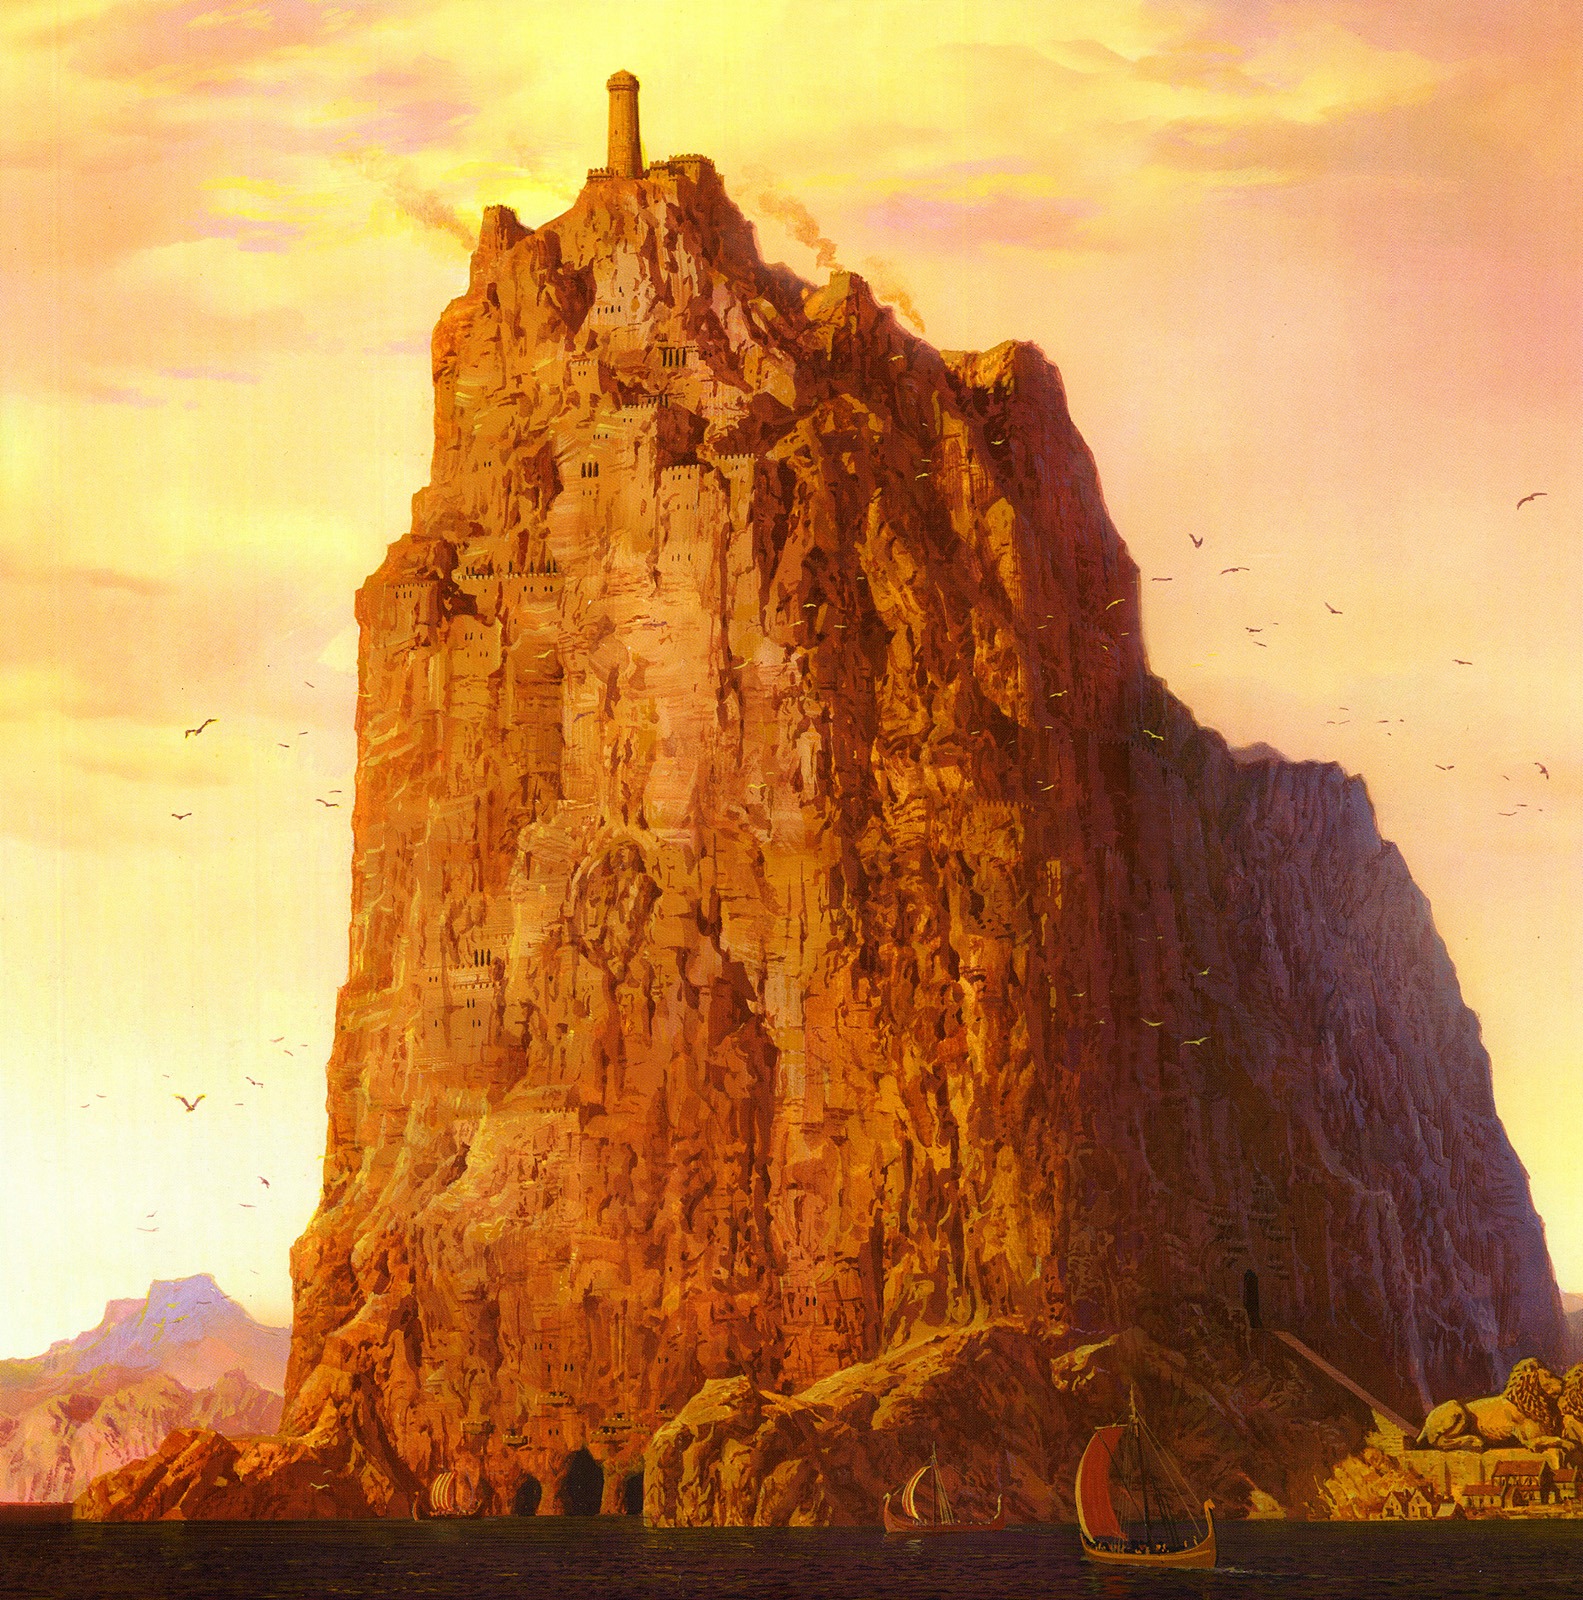 What's your favorite castle? - General (ASoIaF) - A Forum of